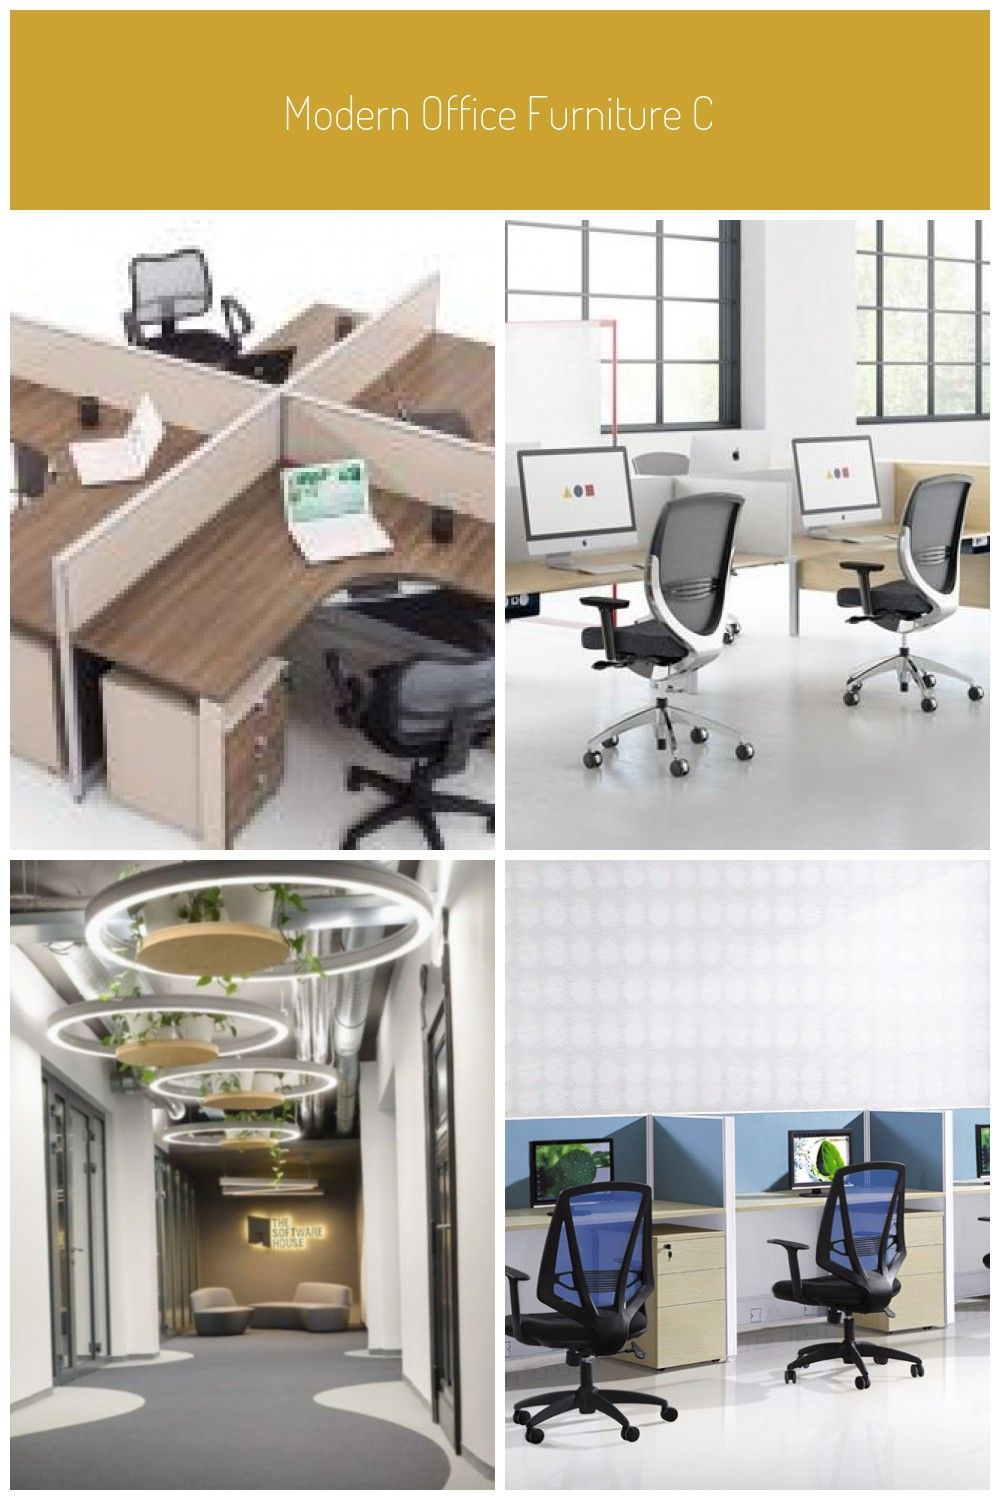 Modern Office Furniture Commercial With Desk